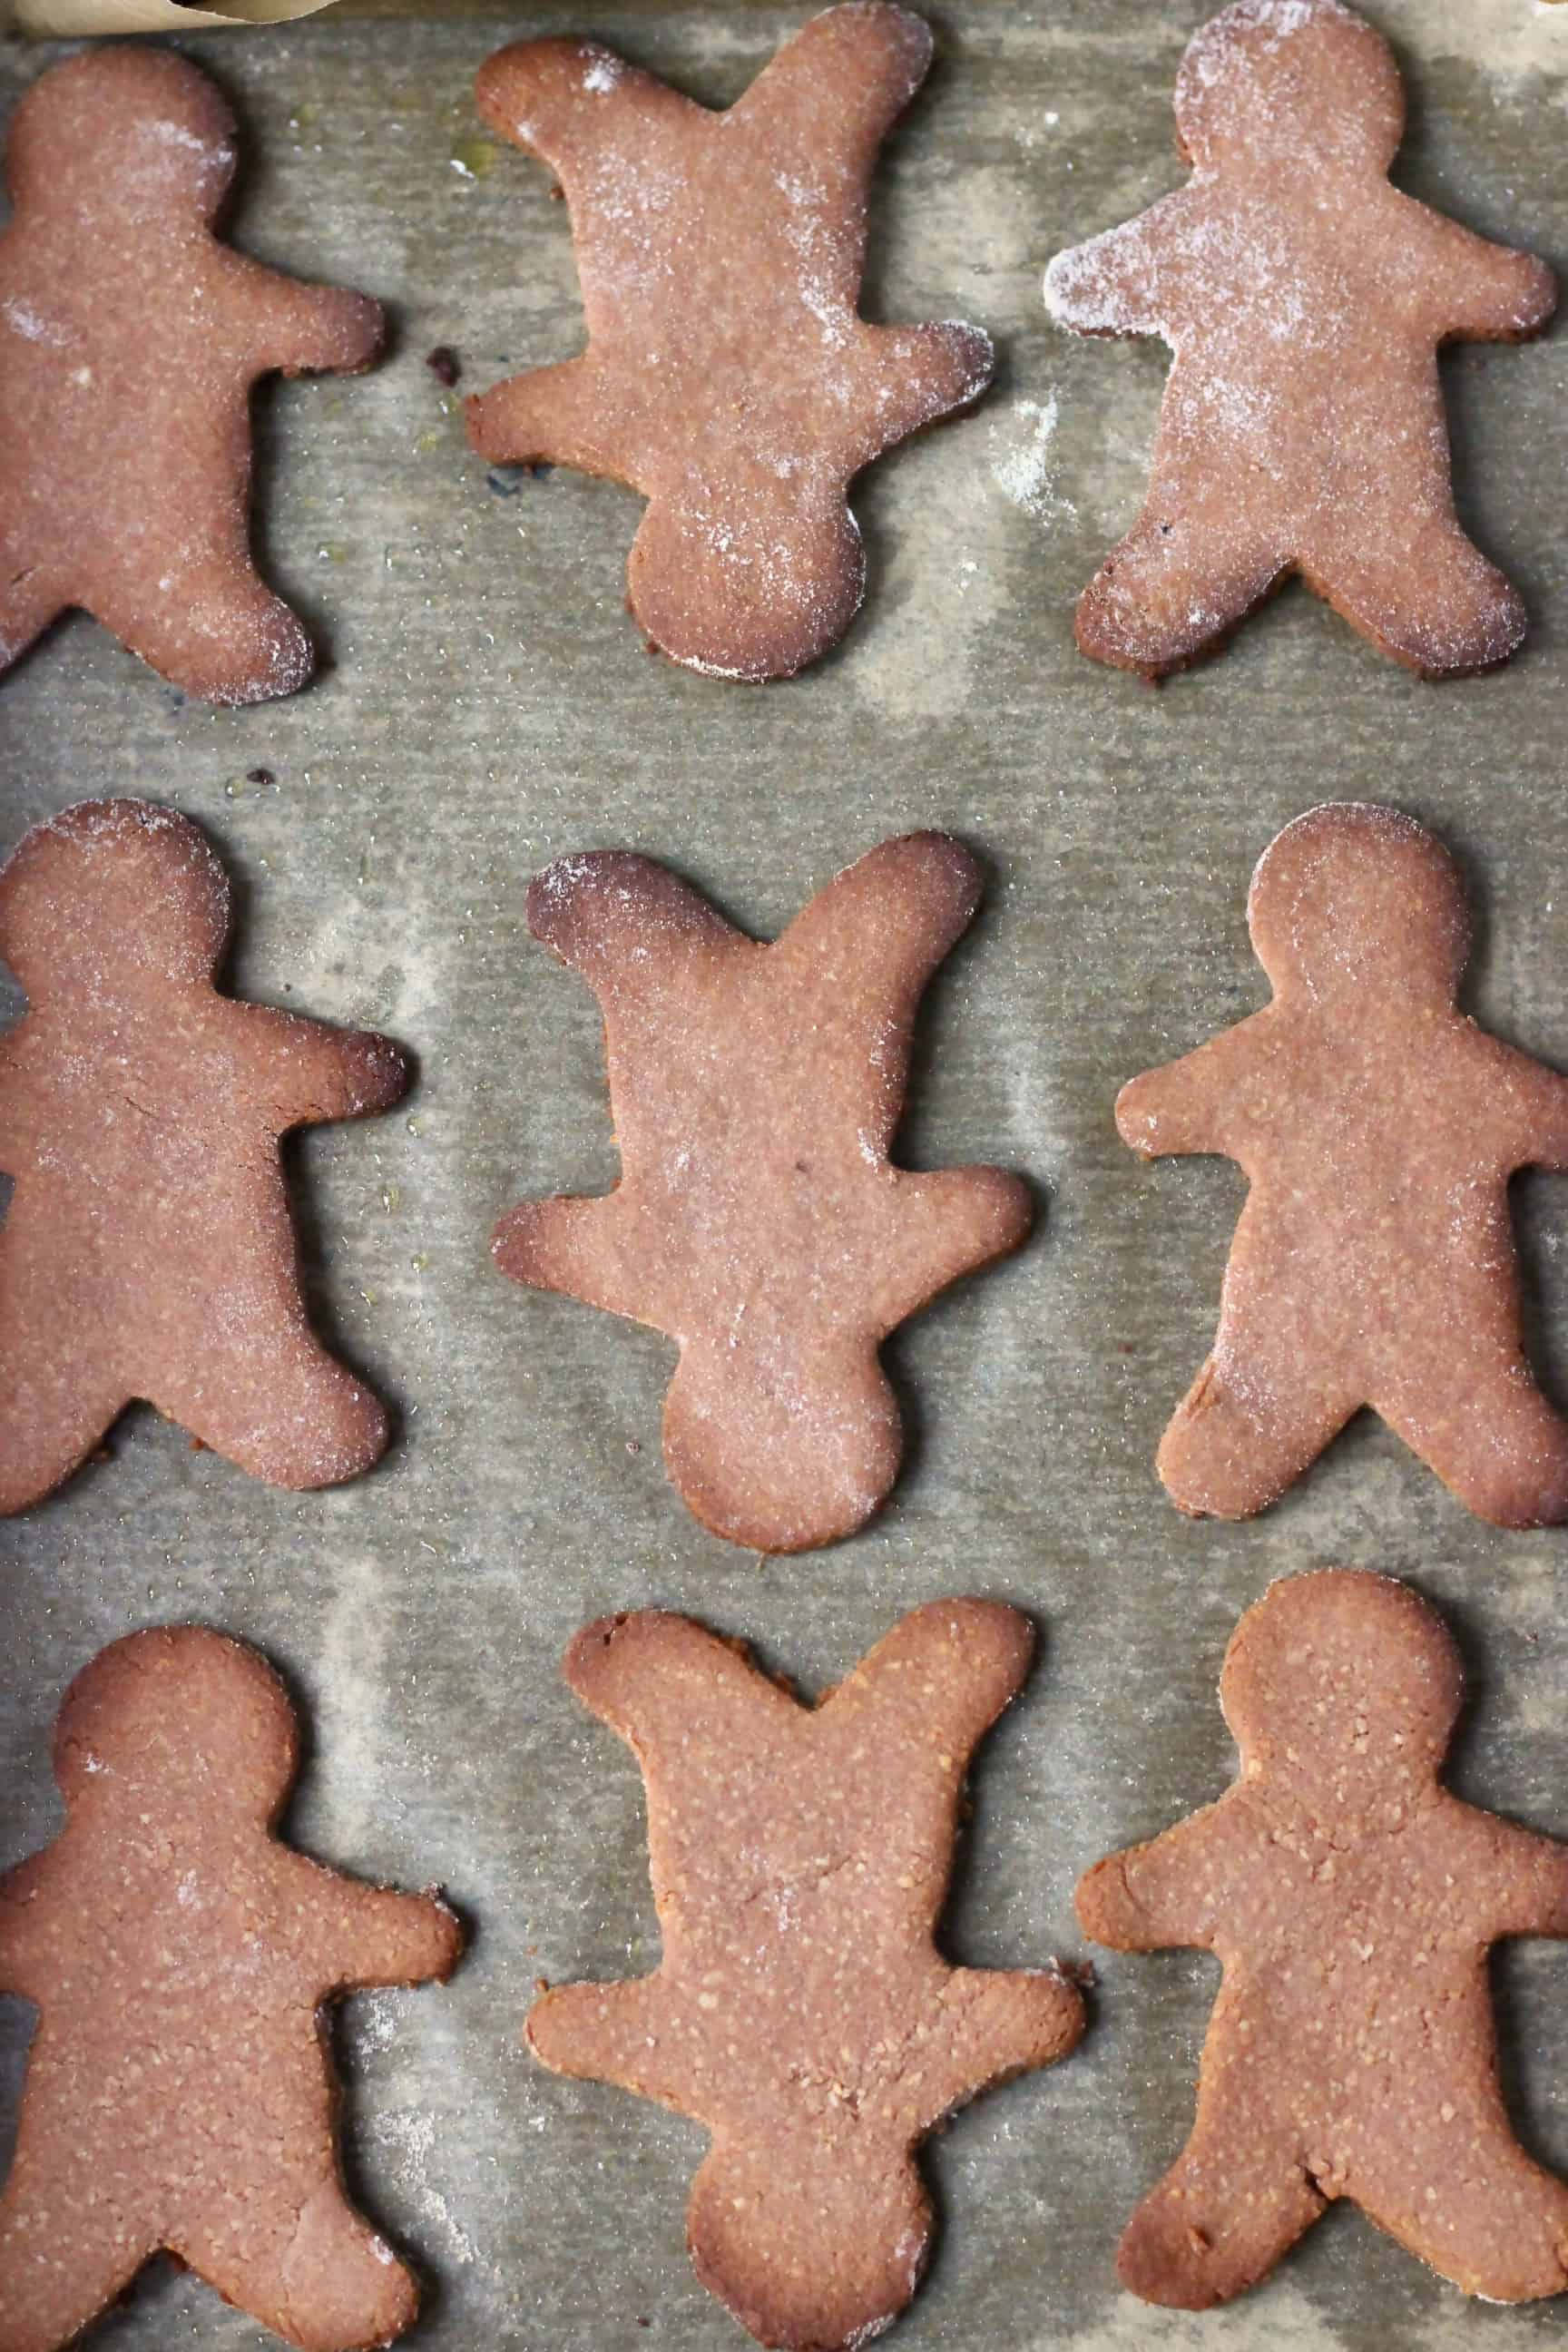 Nine baked gluten-free vegan gingerbread cookies on a sheet of baking paper